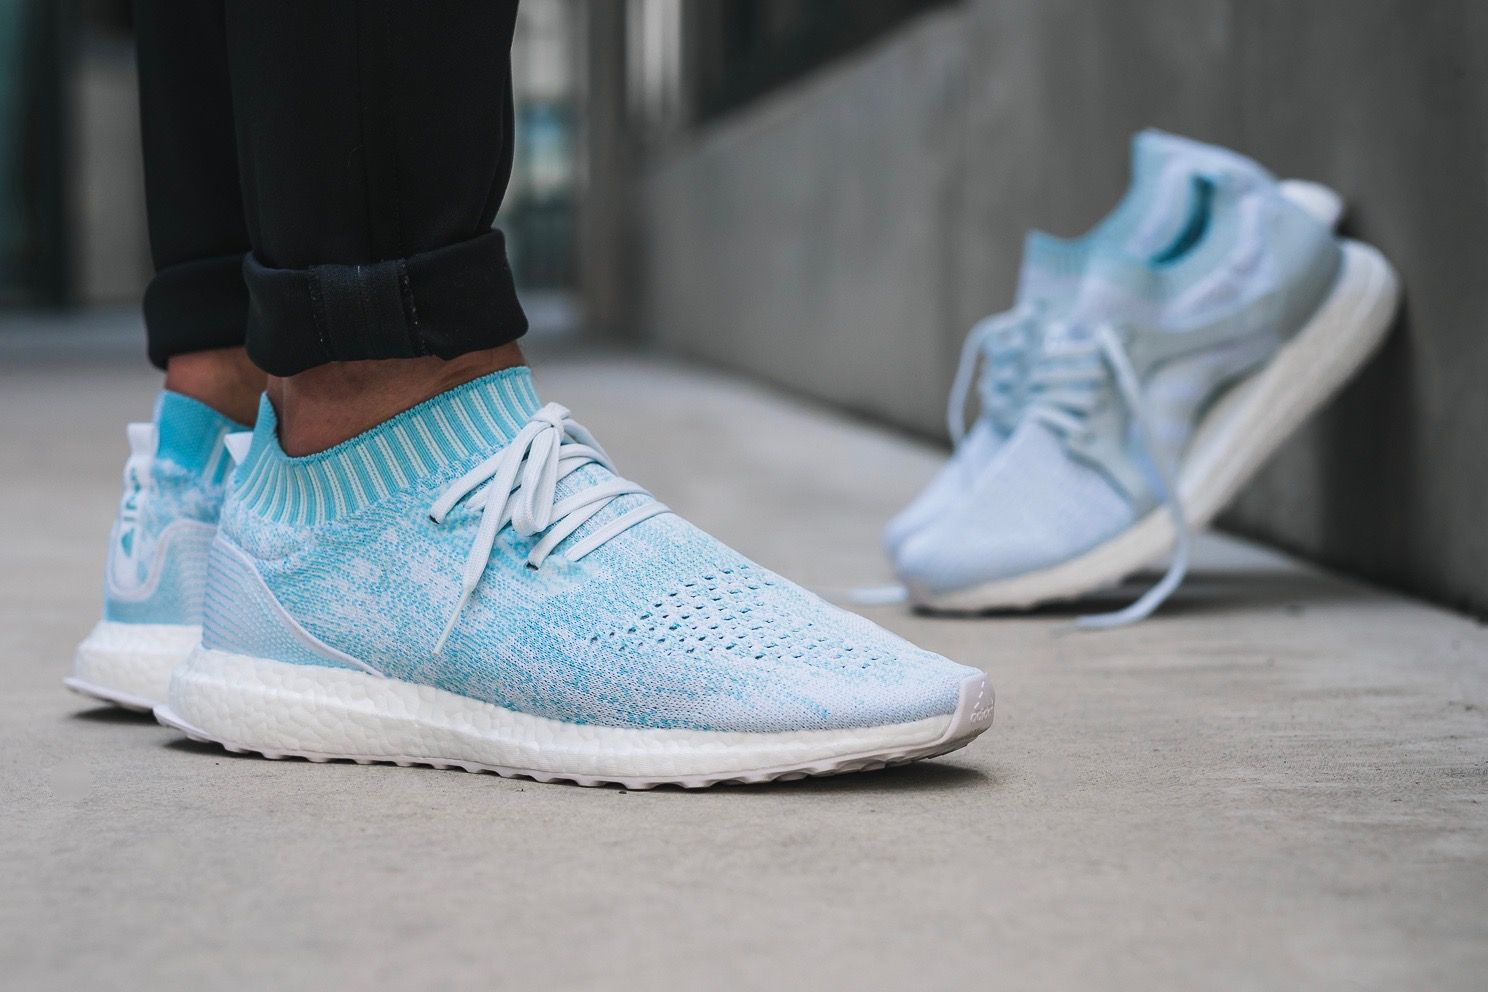 wholesale dealer 3d6bb 7c7e1 adidas x Parley Ultra Boost - Solebox On Foot Preview ...